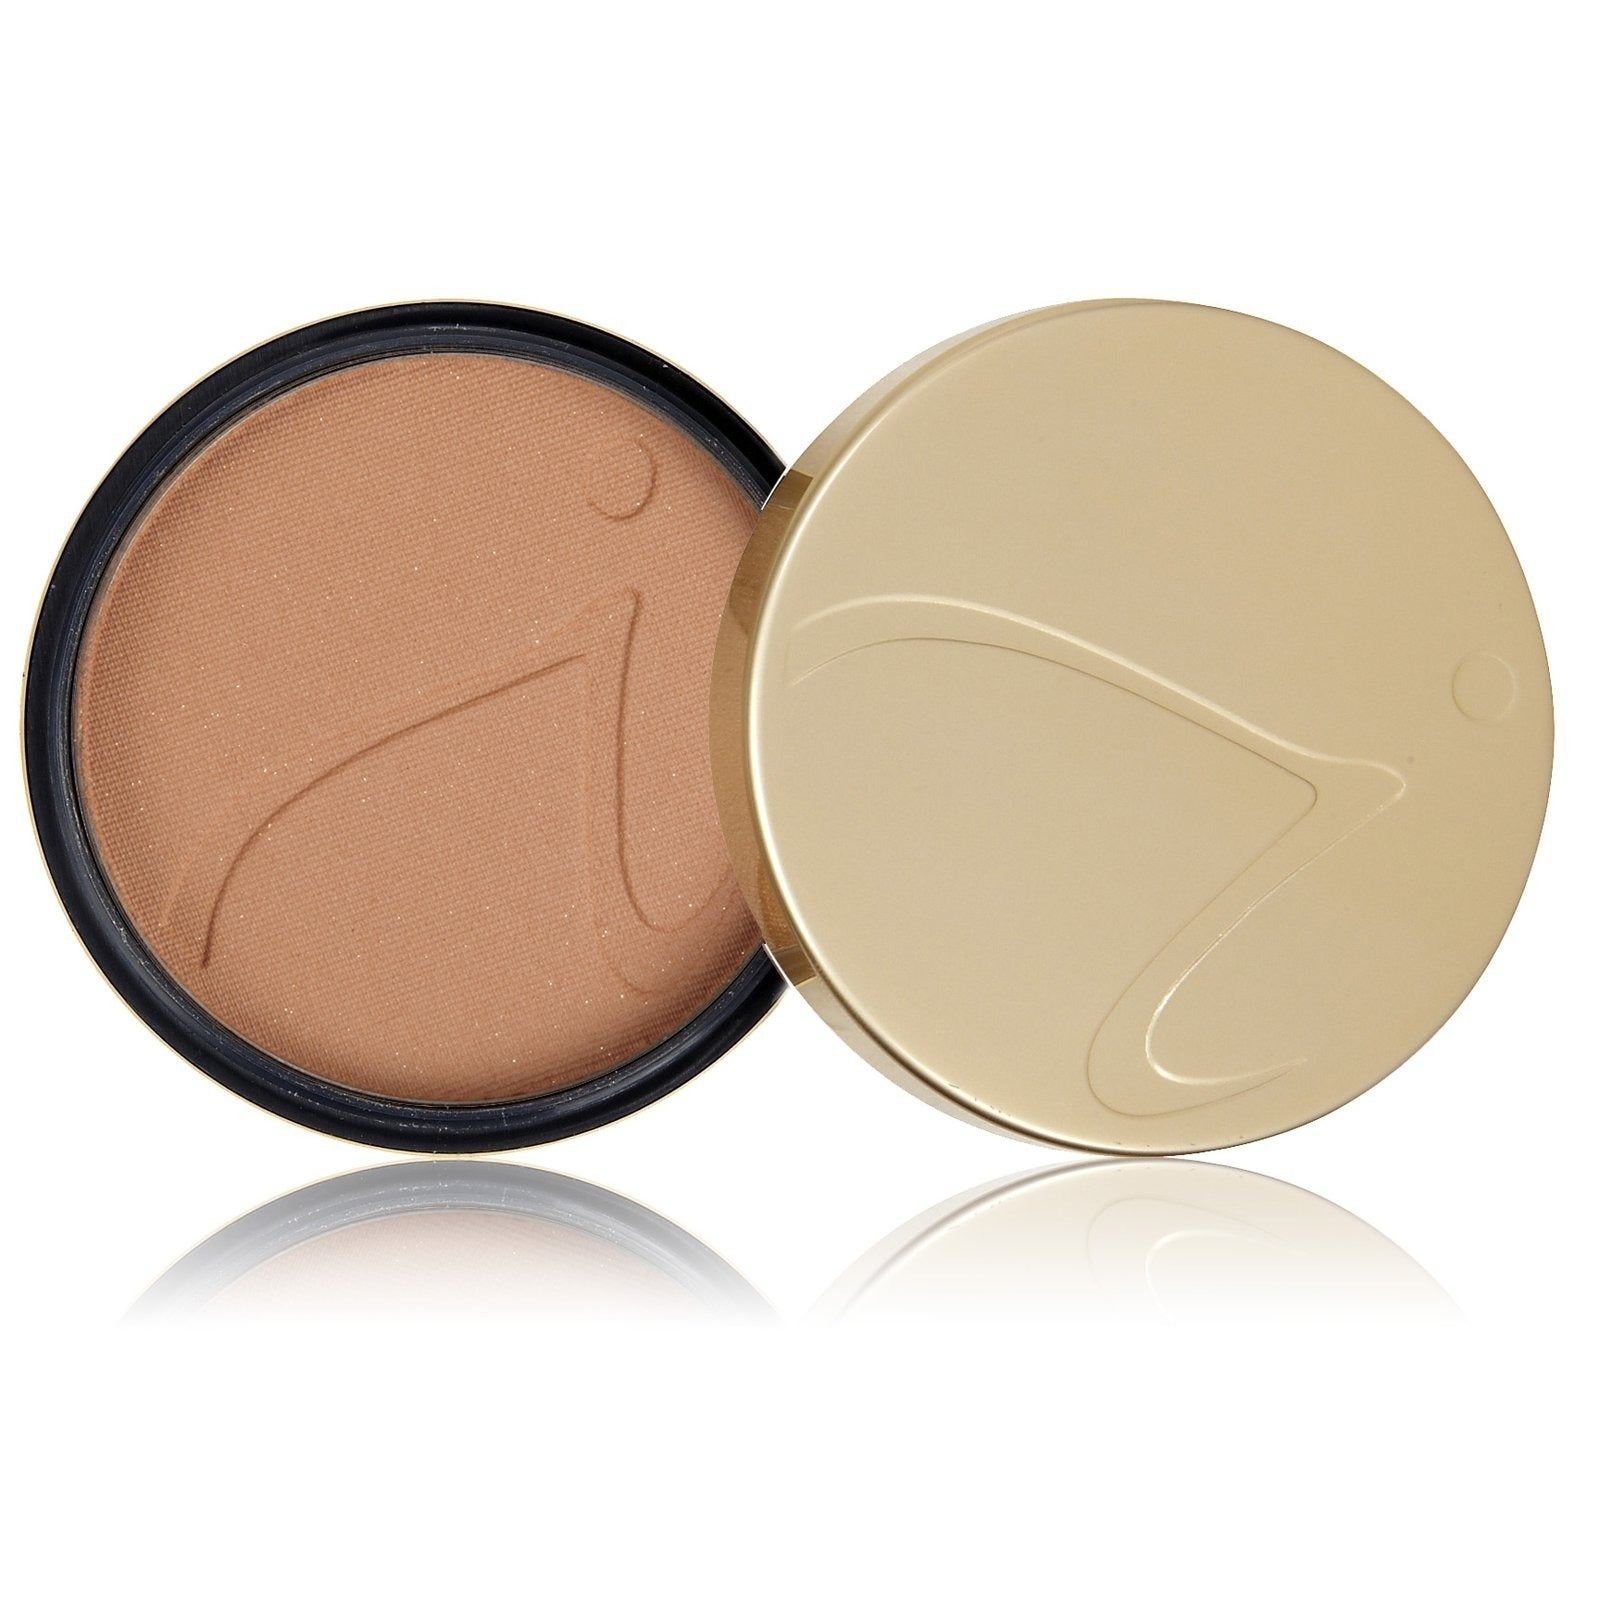 Jane Iredale Powder So-Bronze 1 Refill (Bronze)